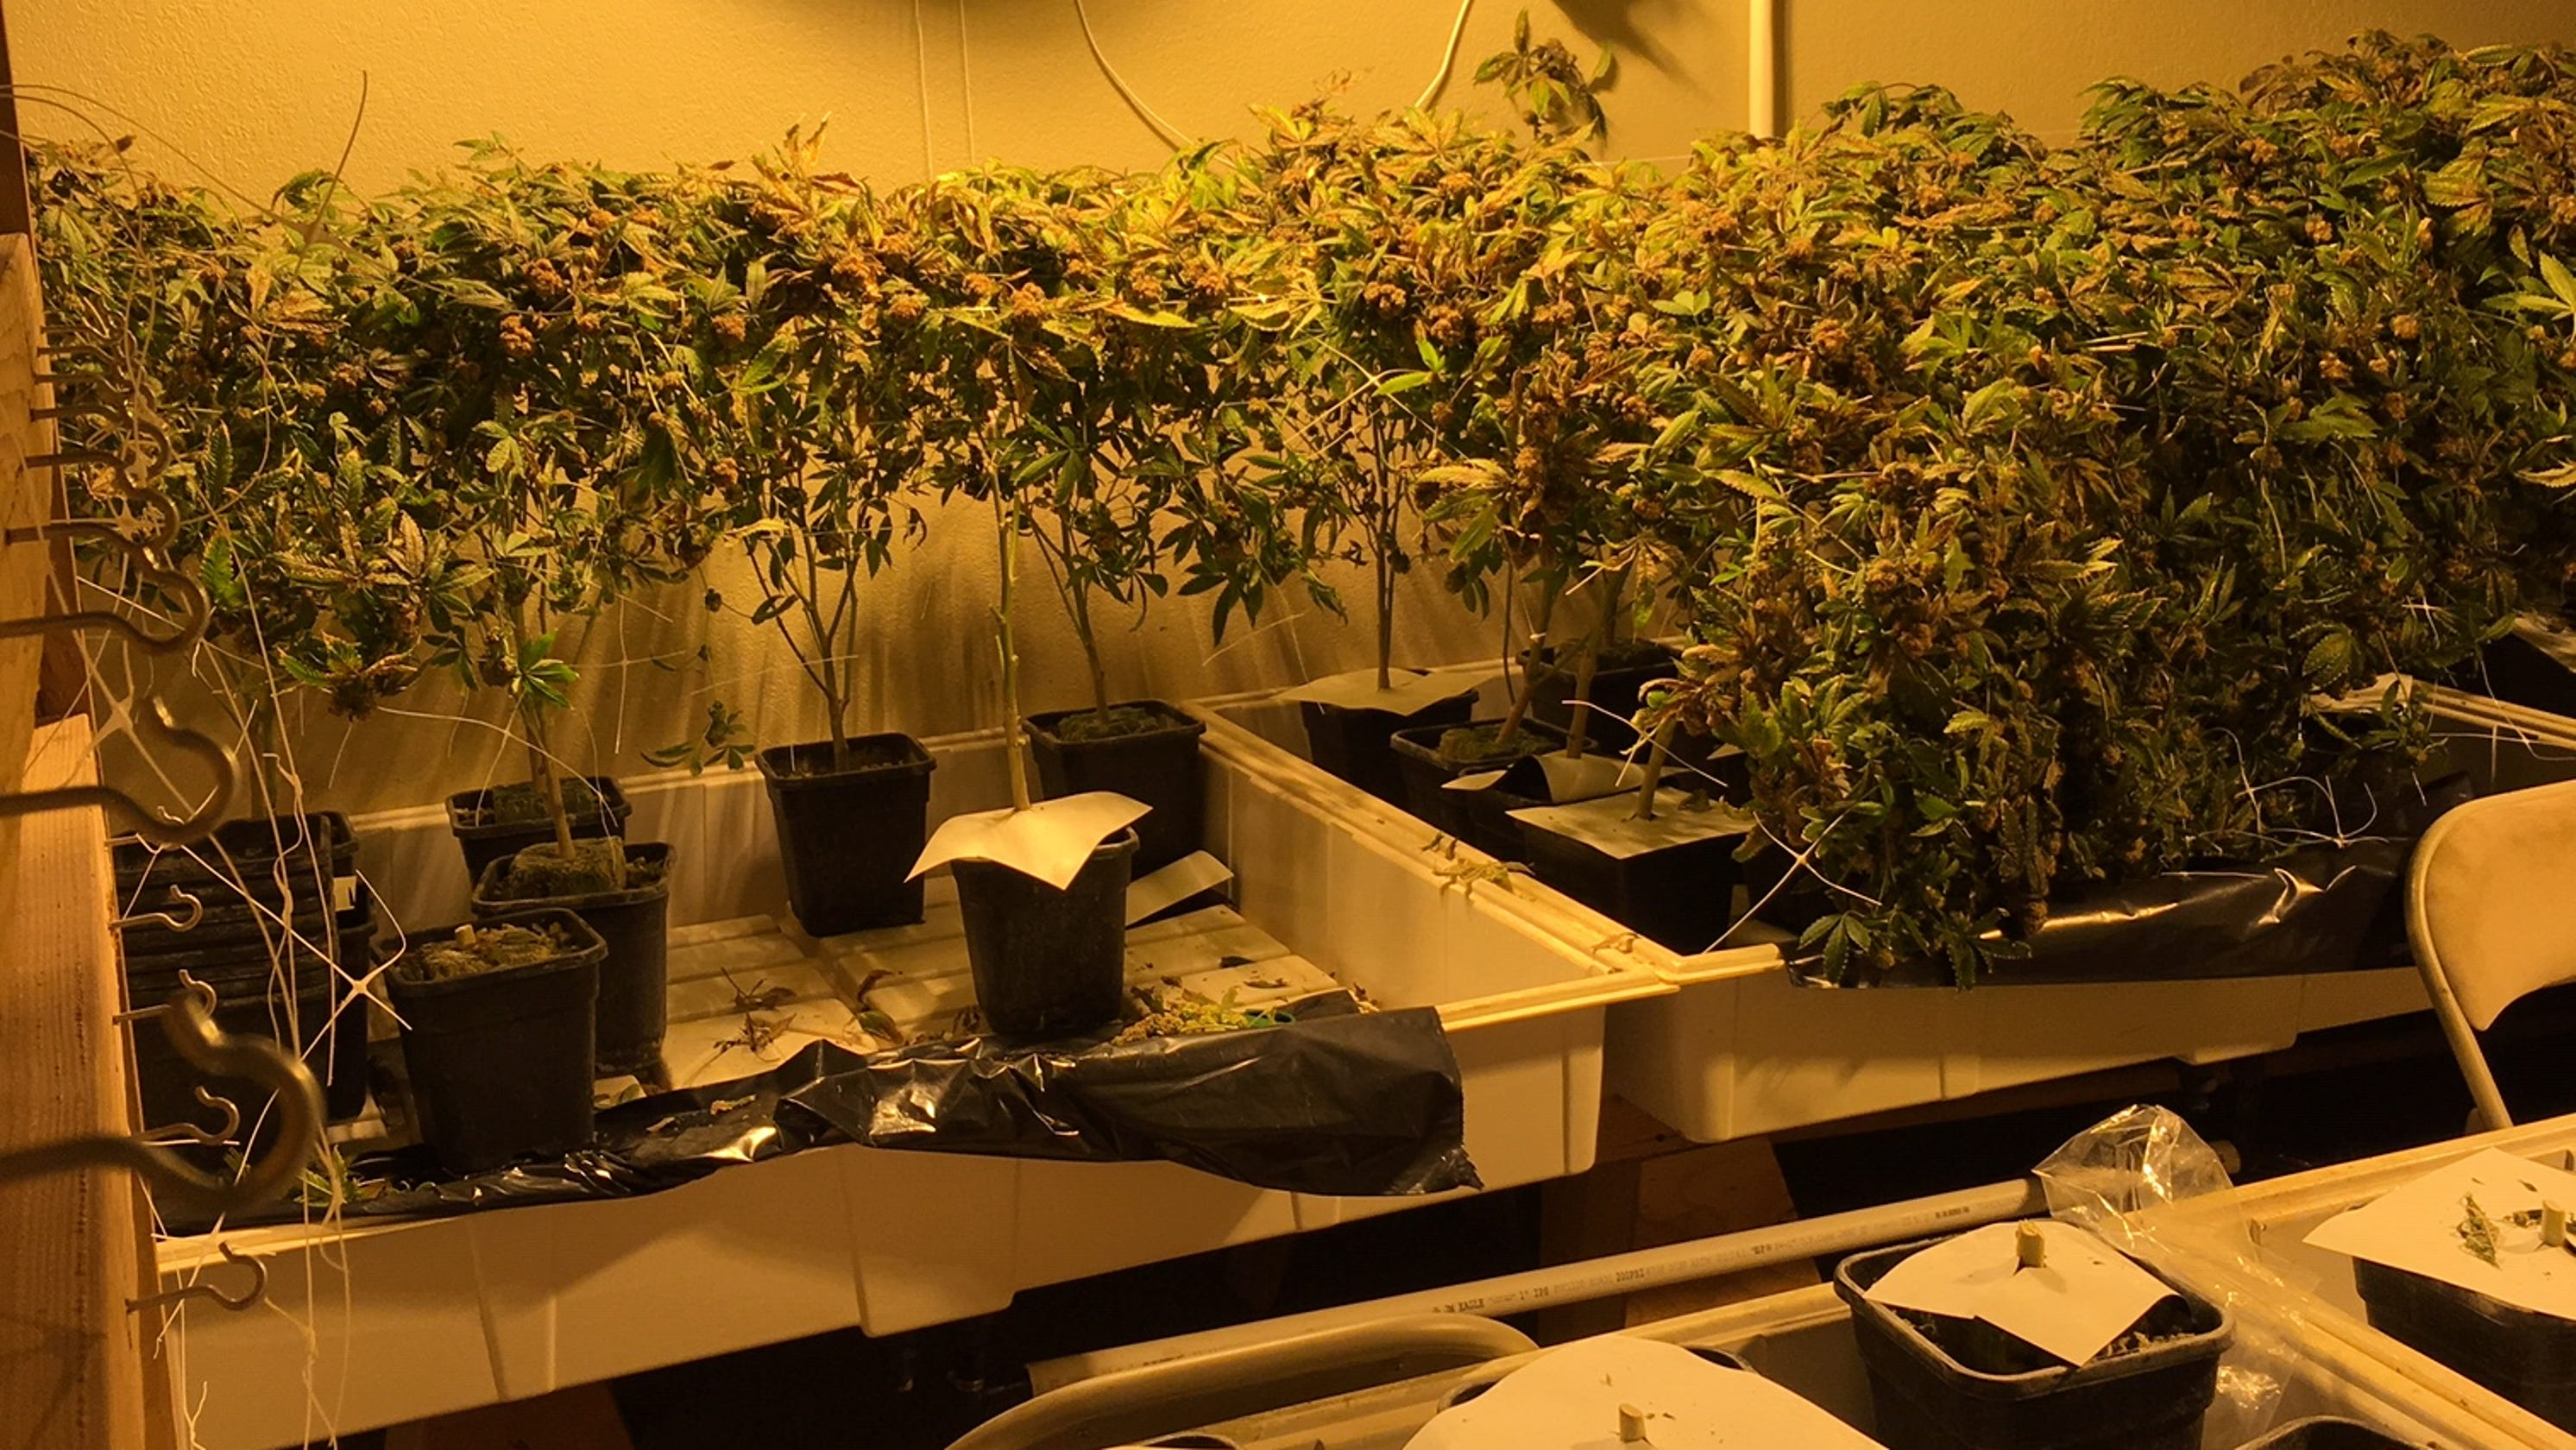 140 pounds of weed found during grow house raid in Visalia